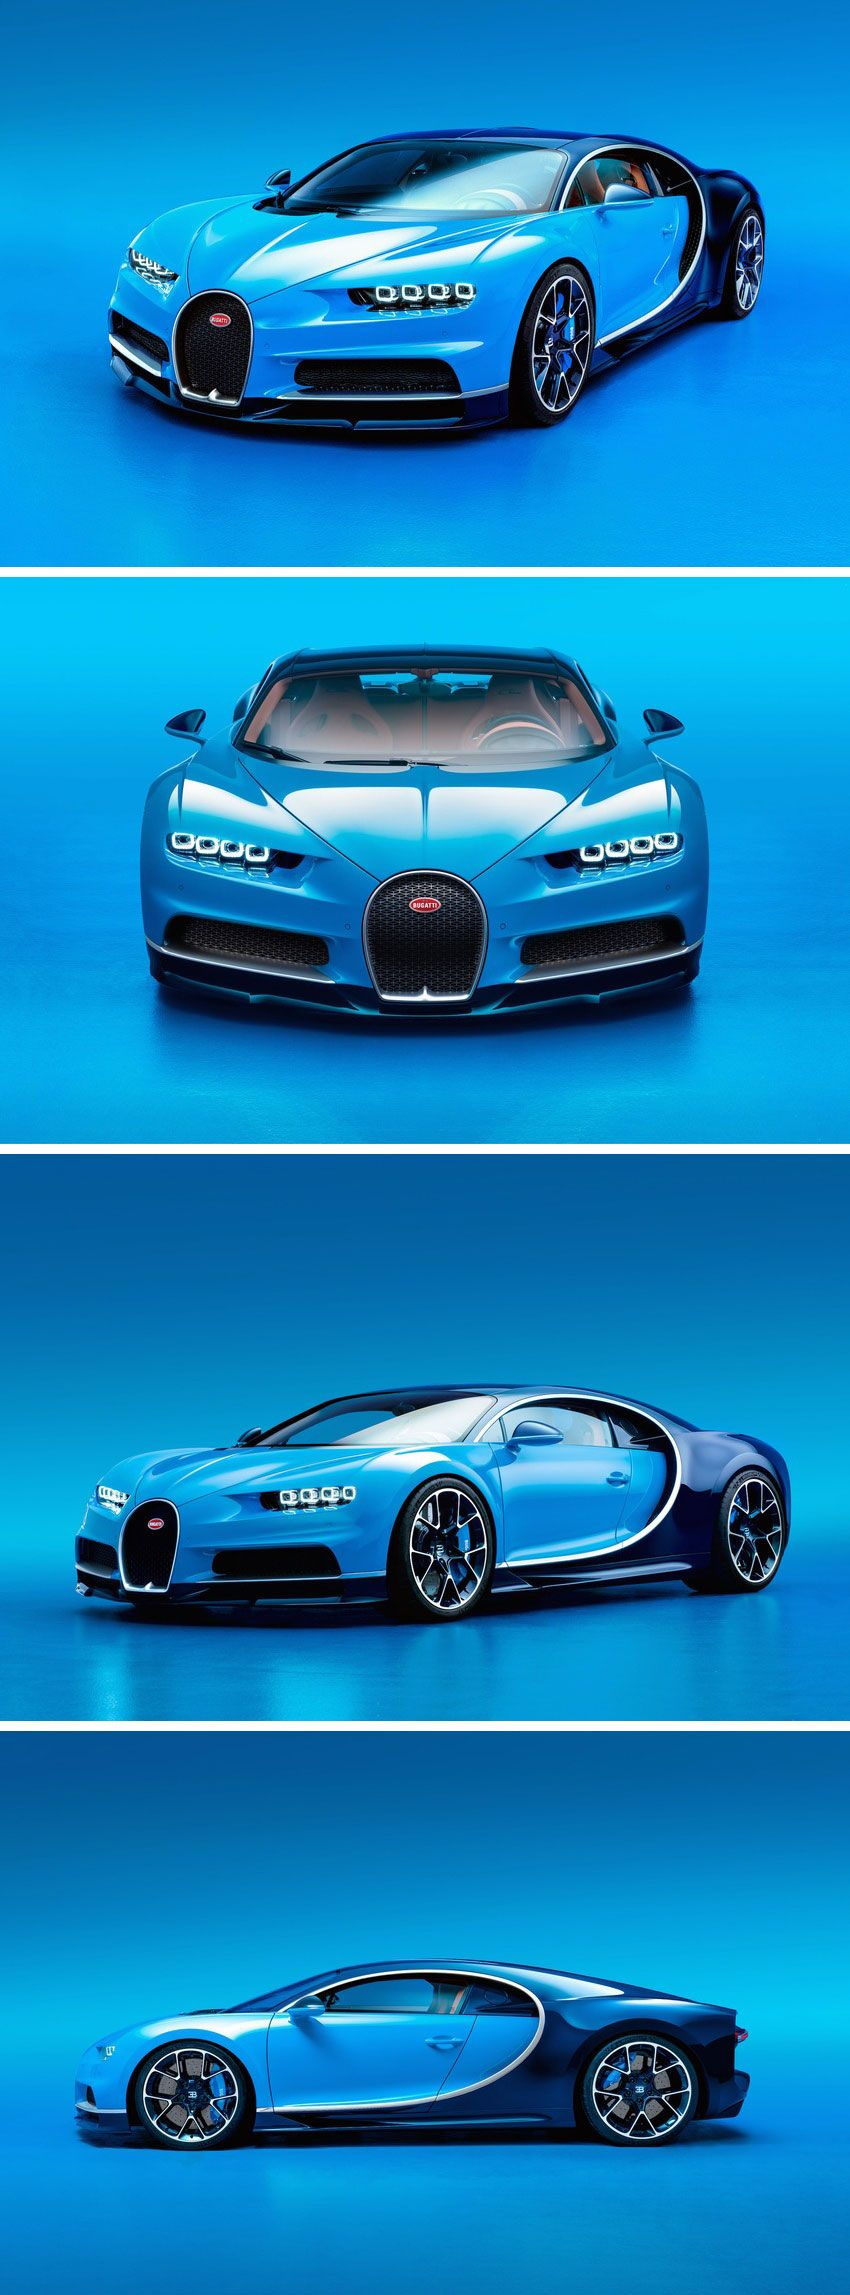 Bugatti's $2.6 million Chiron is the new fastest car in the world